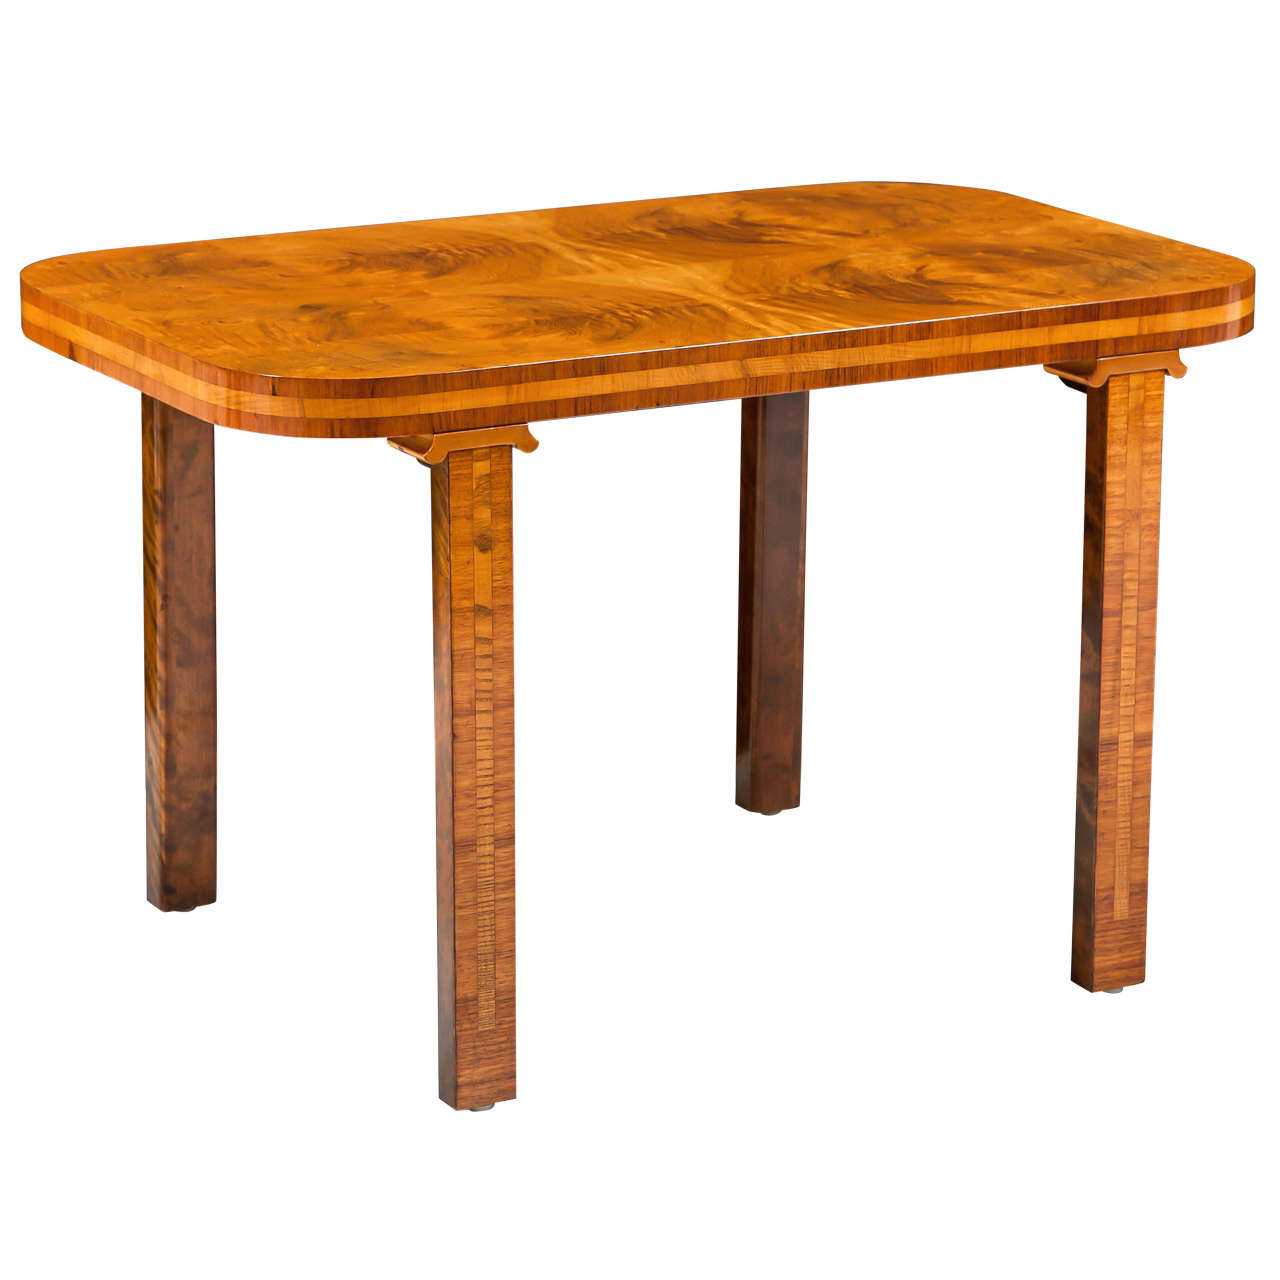 Swedish modern coffee table 1930s for sale at 1stdibs for Modern coffee table for sale